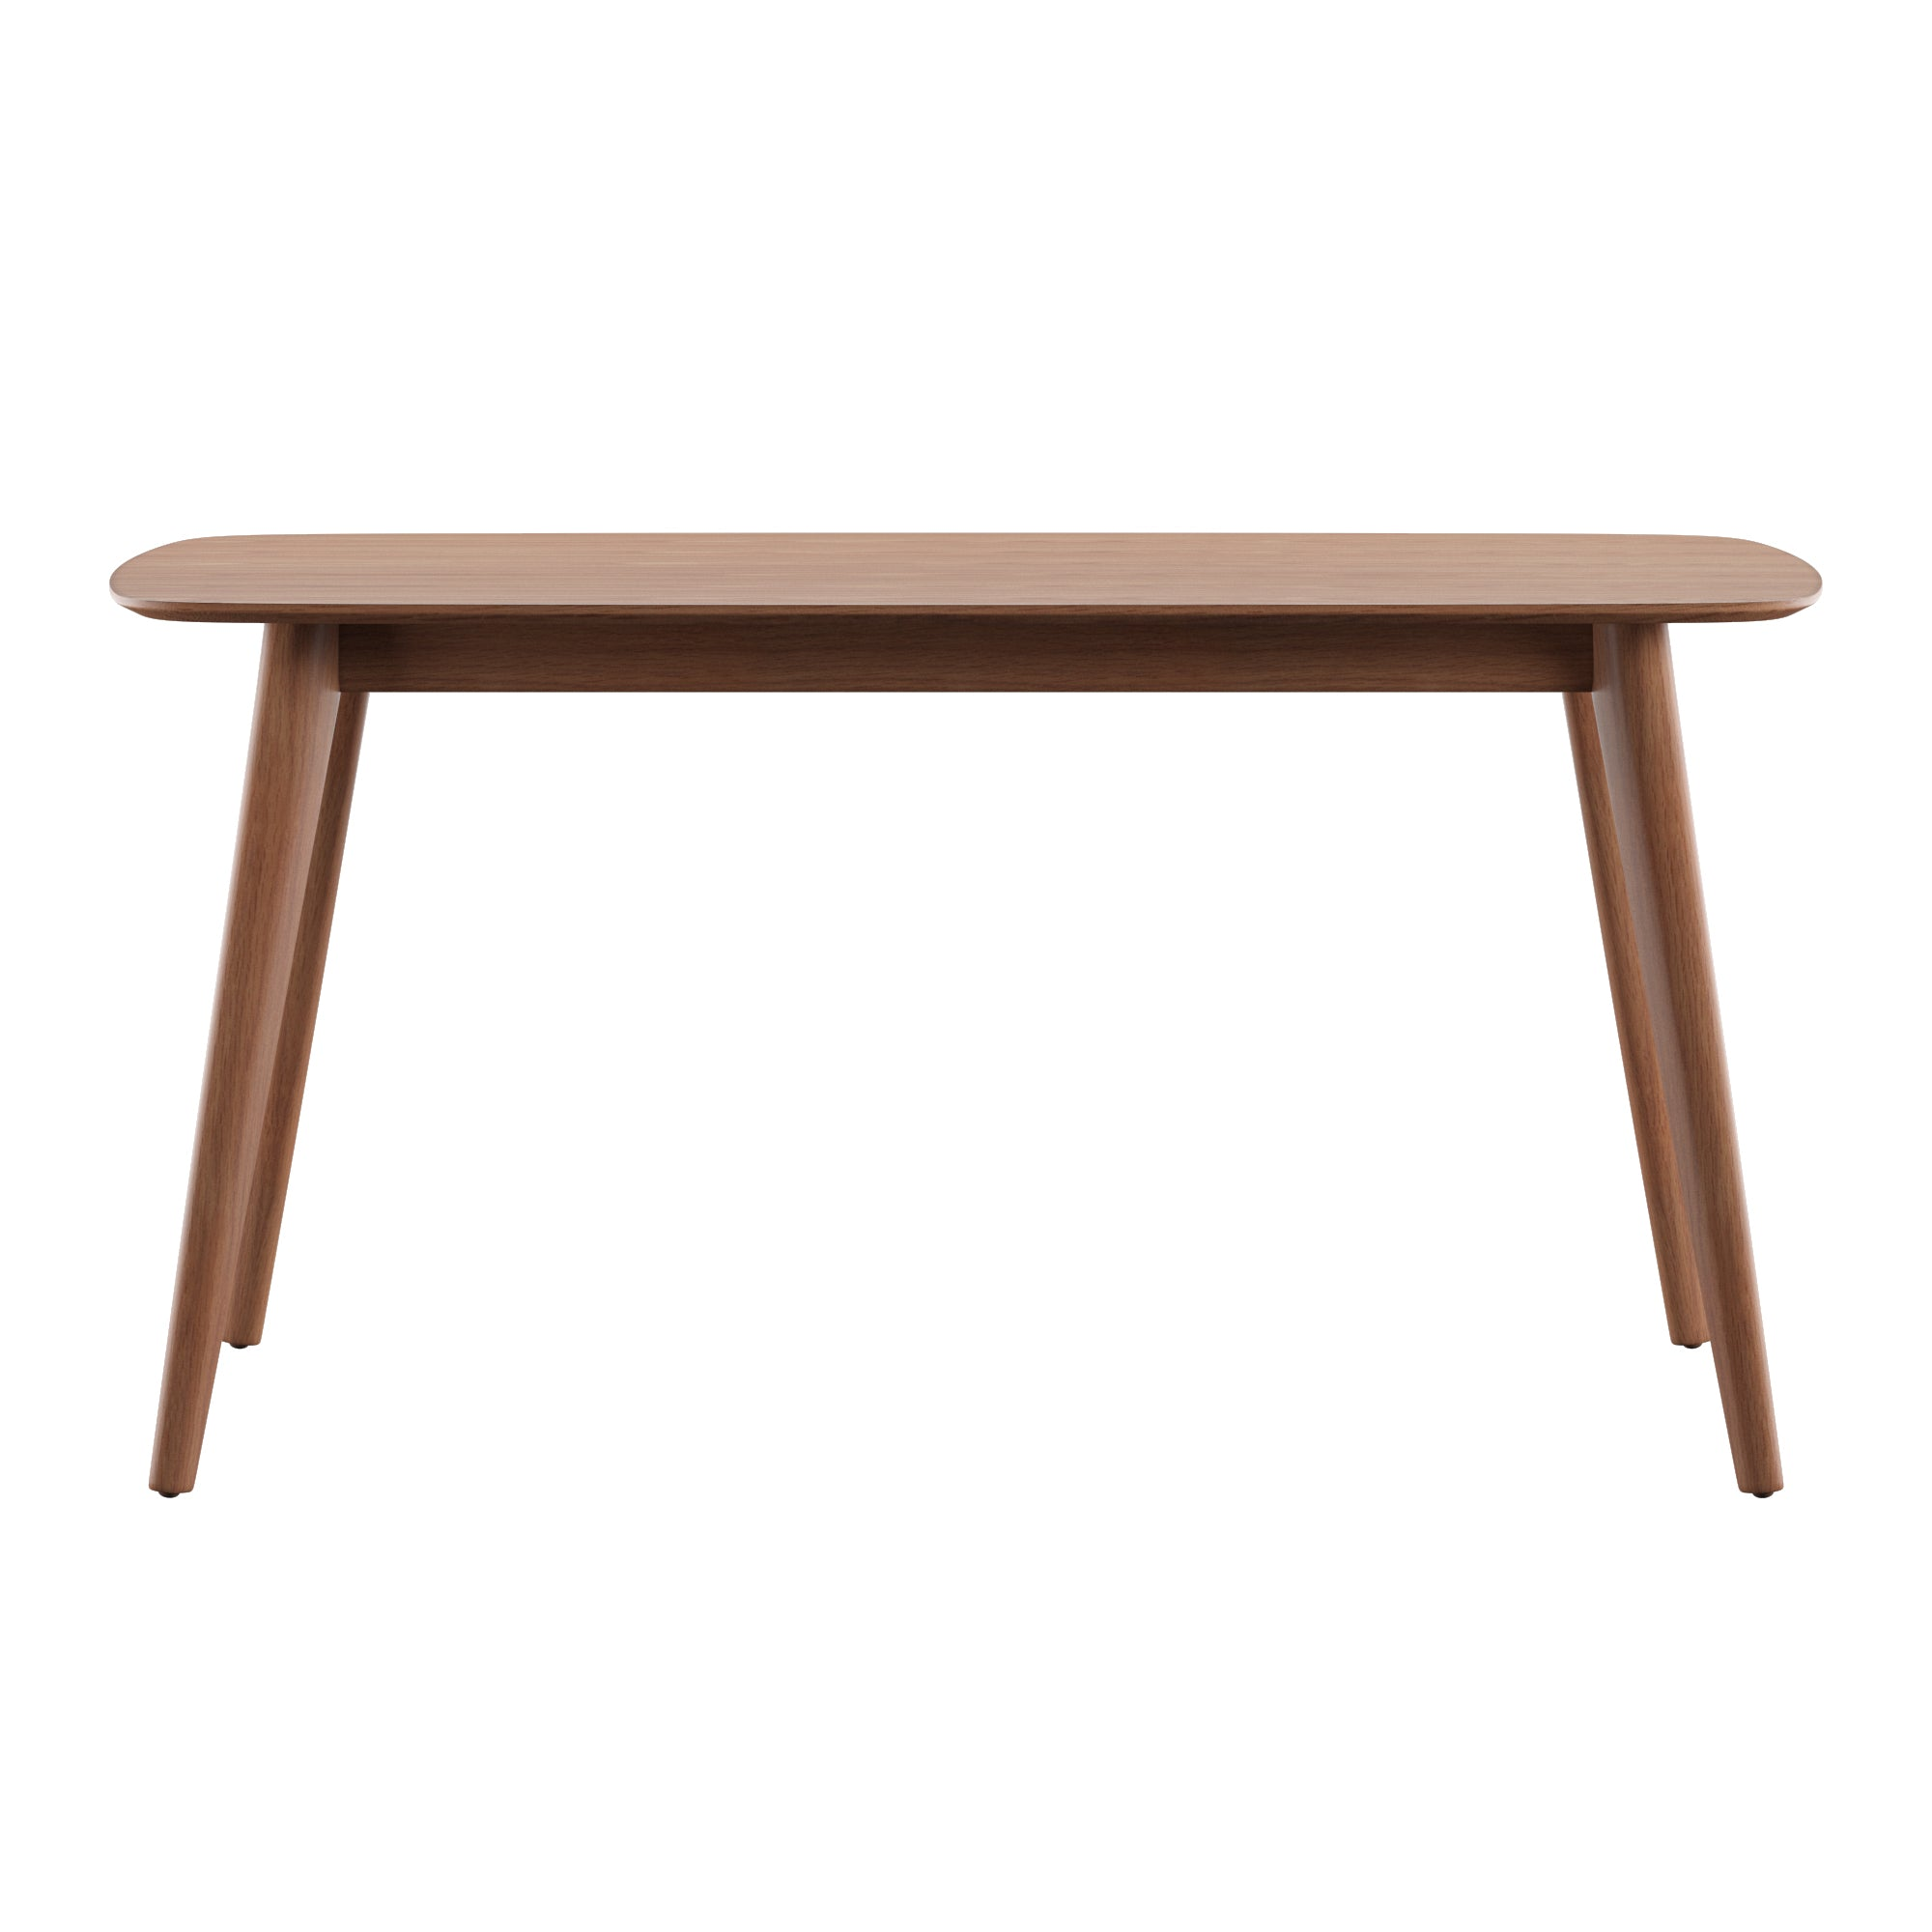 Mid-Century Modern Tapered Dining Table - Natural Finish, 59-inch